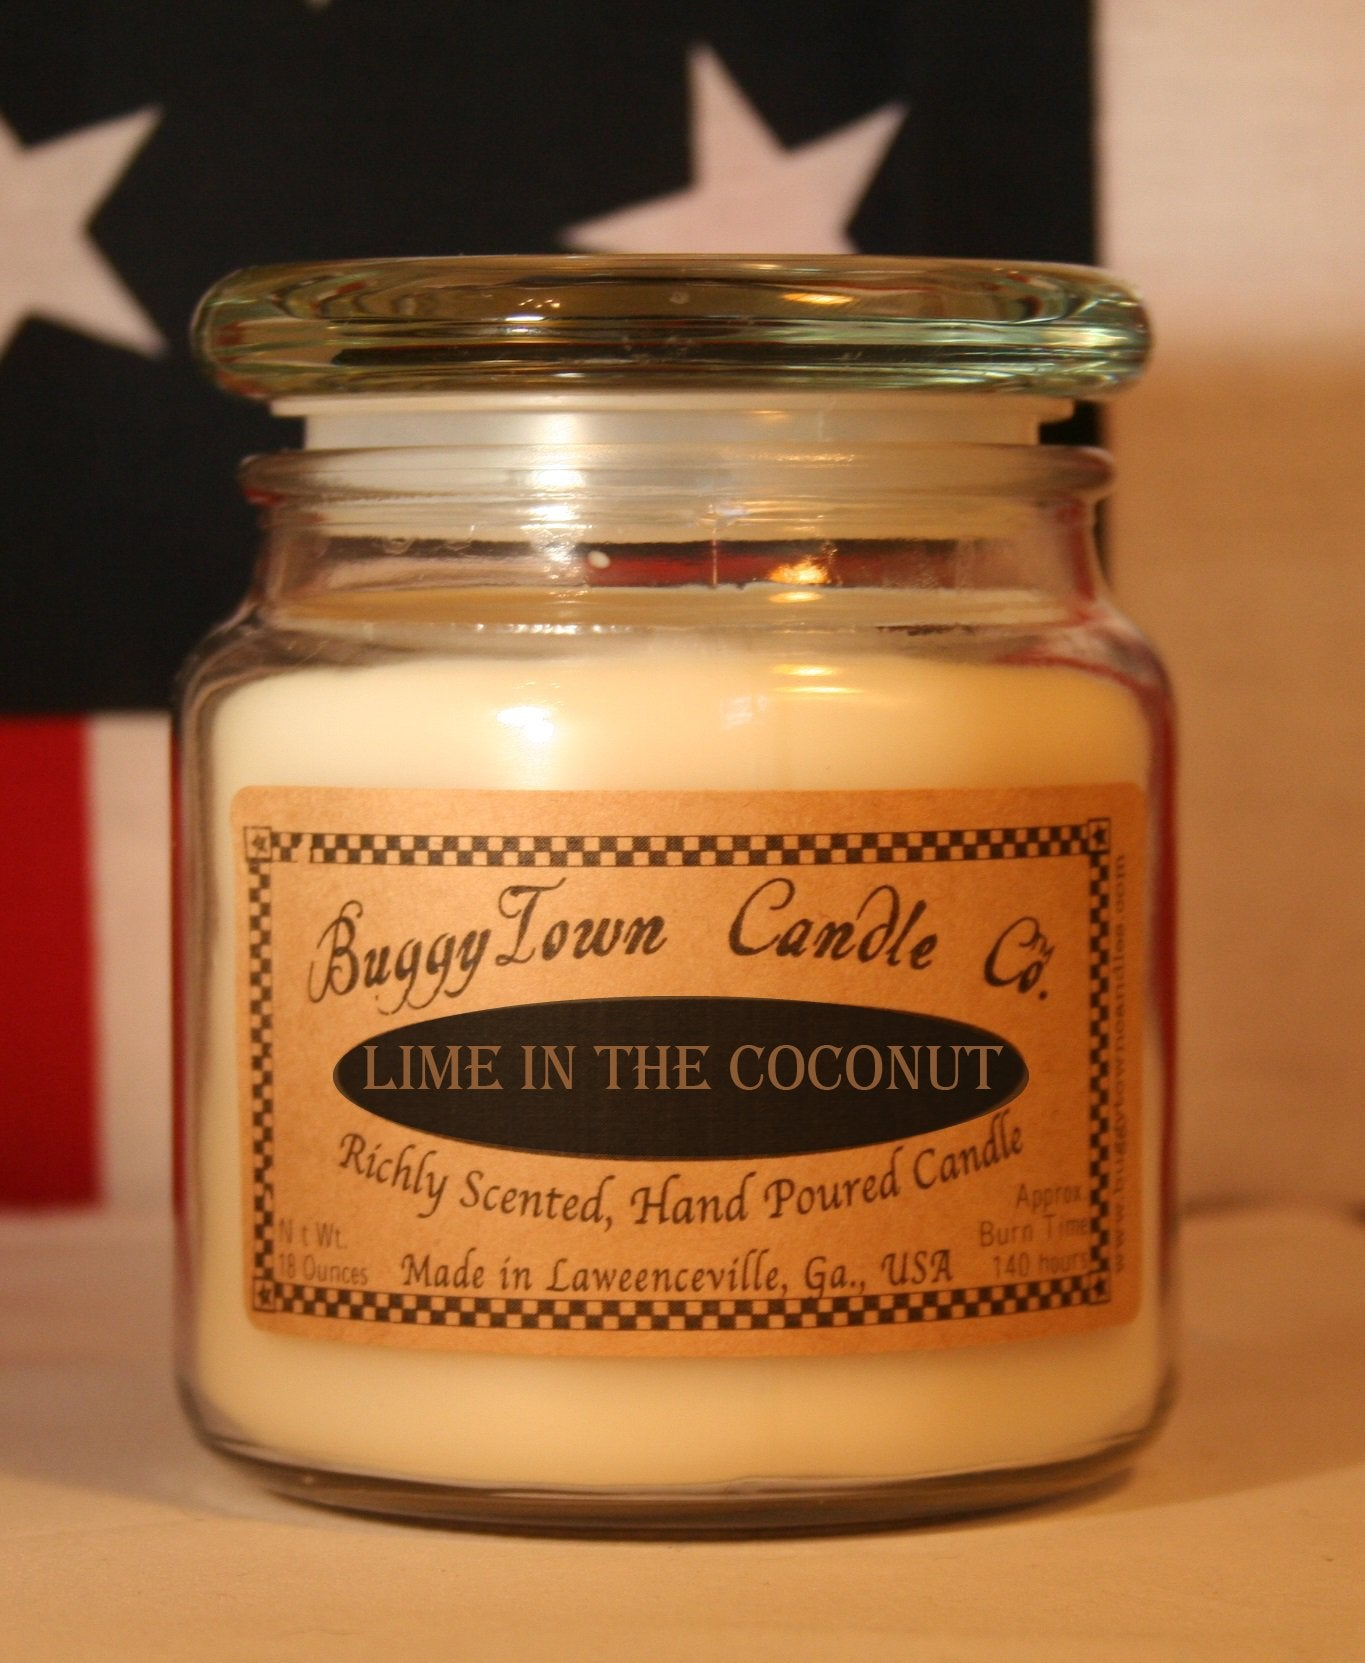 Lime in the Coconut Candles